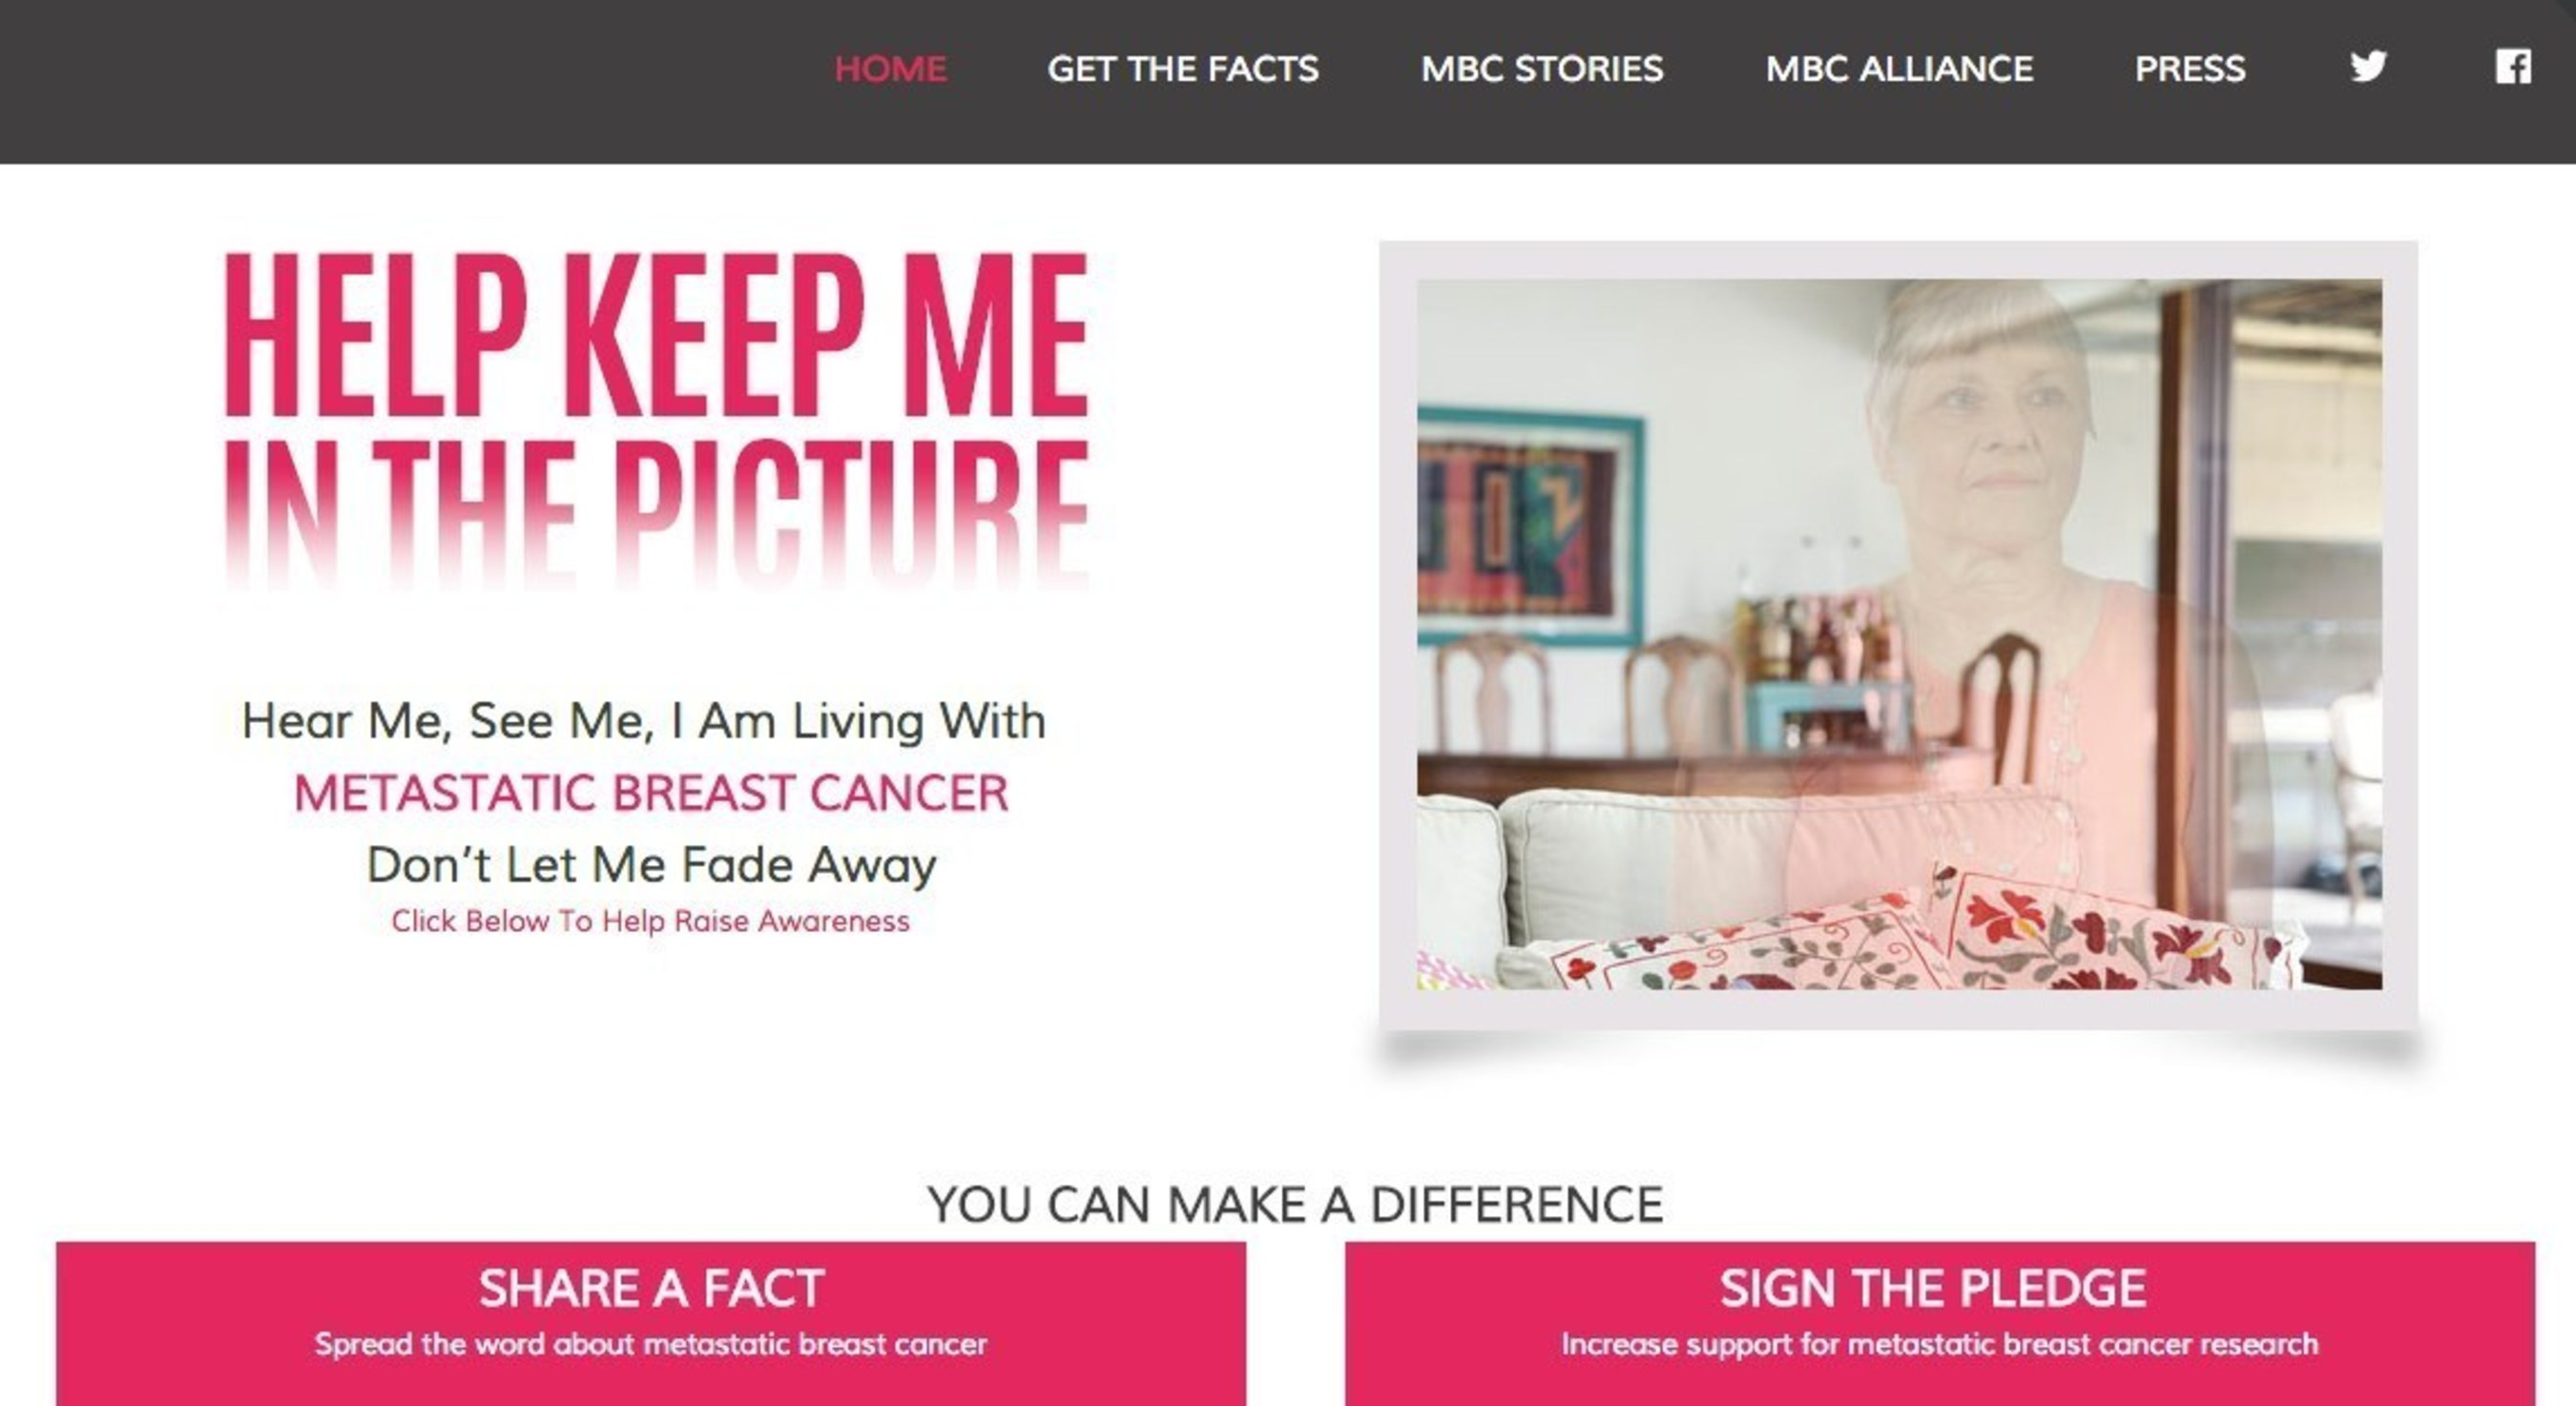 The Metastatic Breast Cancer Alliance Launches Campaign To Raise Awareness And Support For Those With Metastatic Breast Cancer